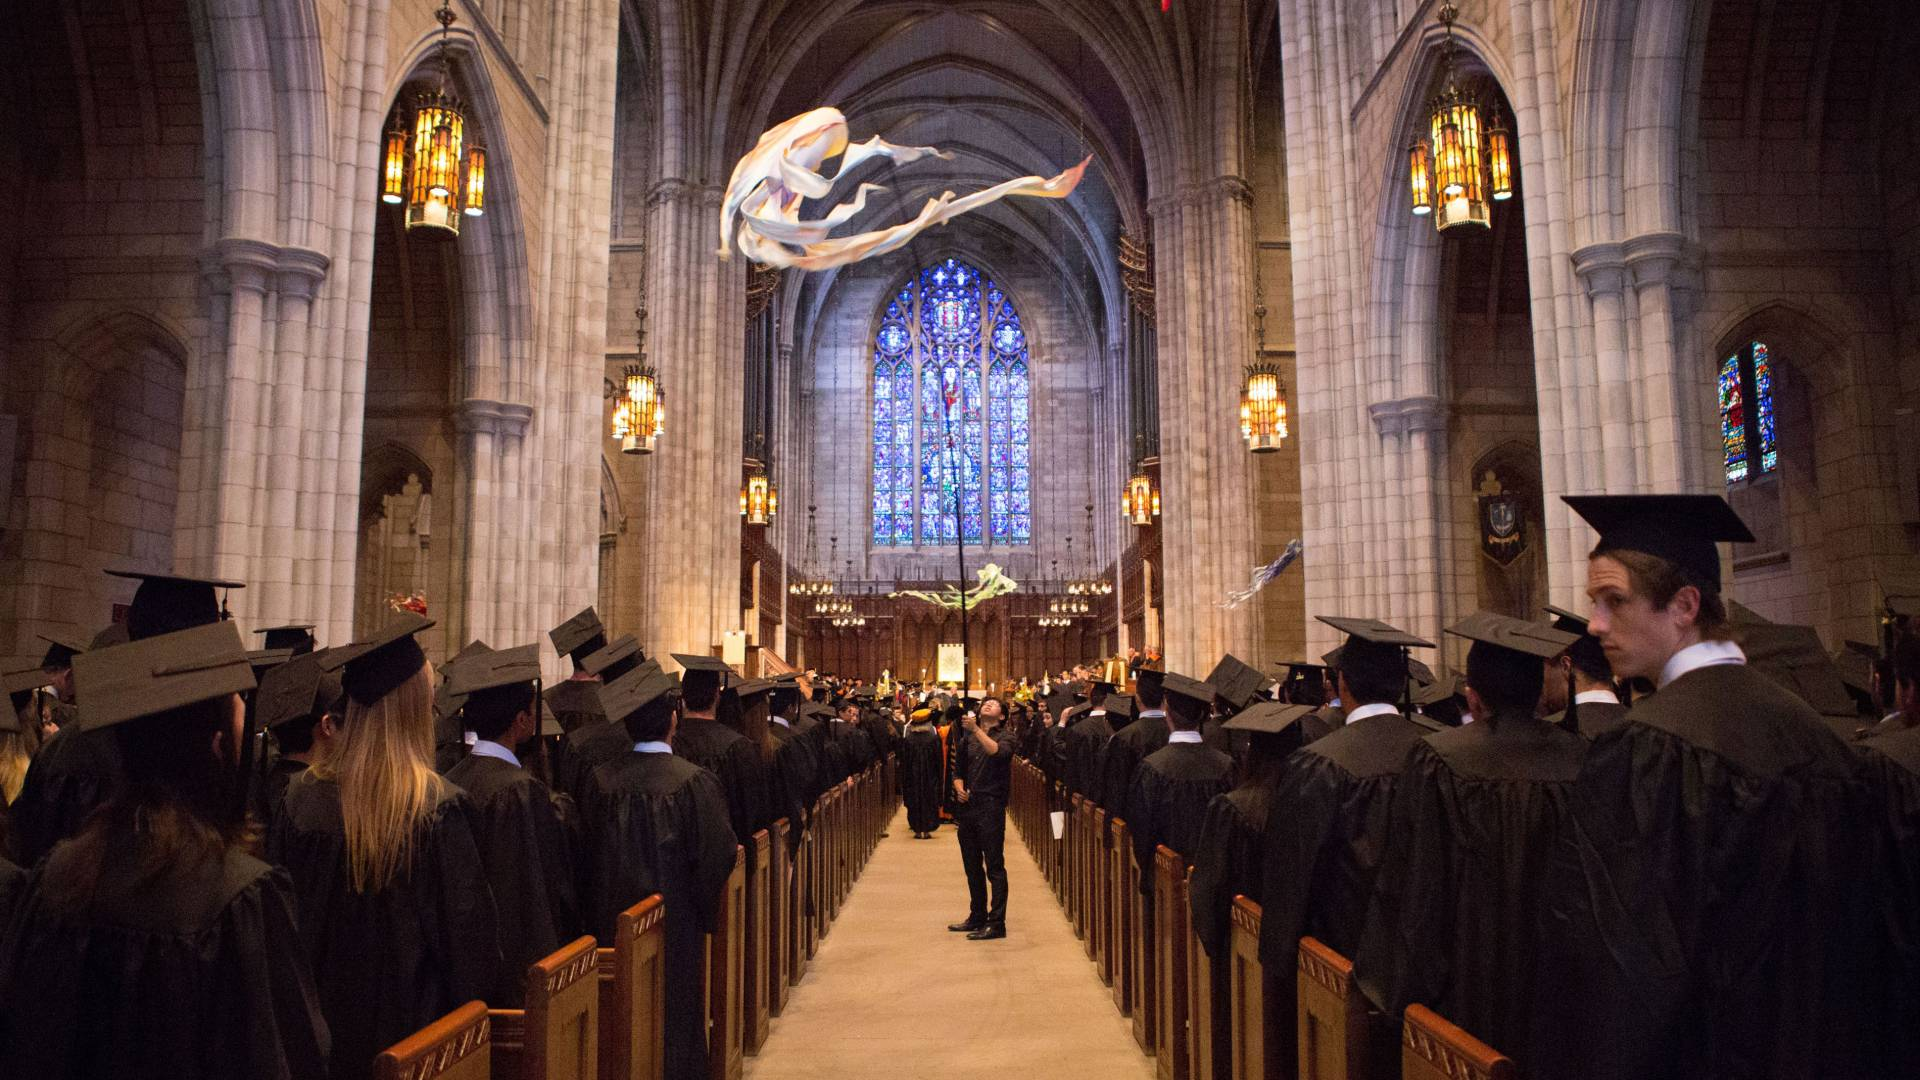 Interior of University Chapel during Baccalaureate ceremony